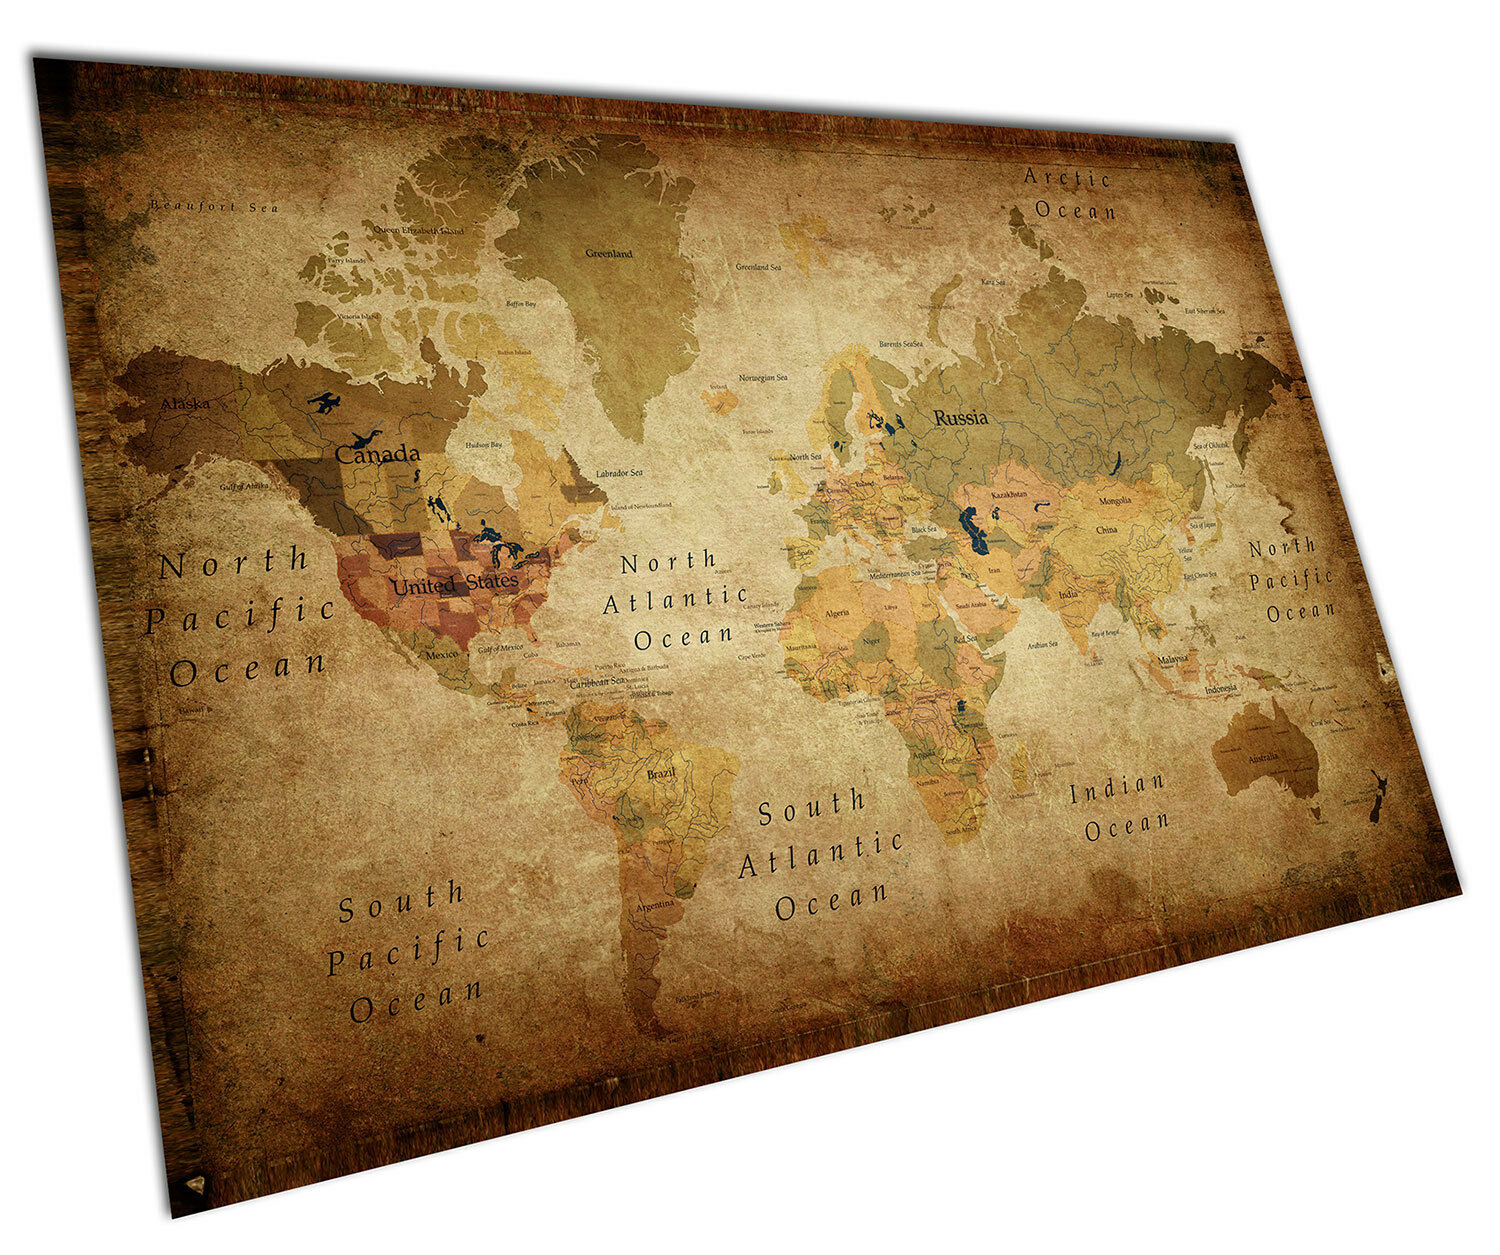 RETRO VINTAGE WORLD Map Wall Art Large A1 Poster 33 X 23 Inch ...